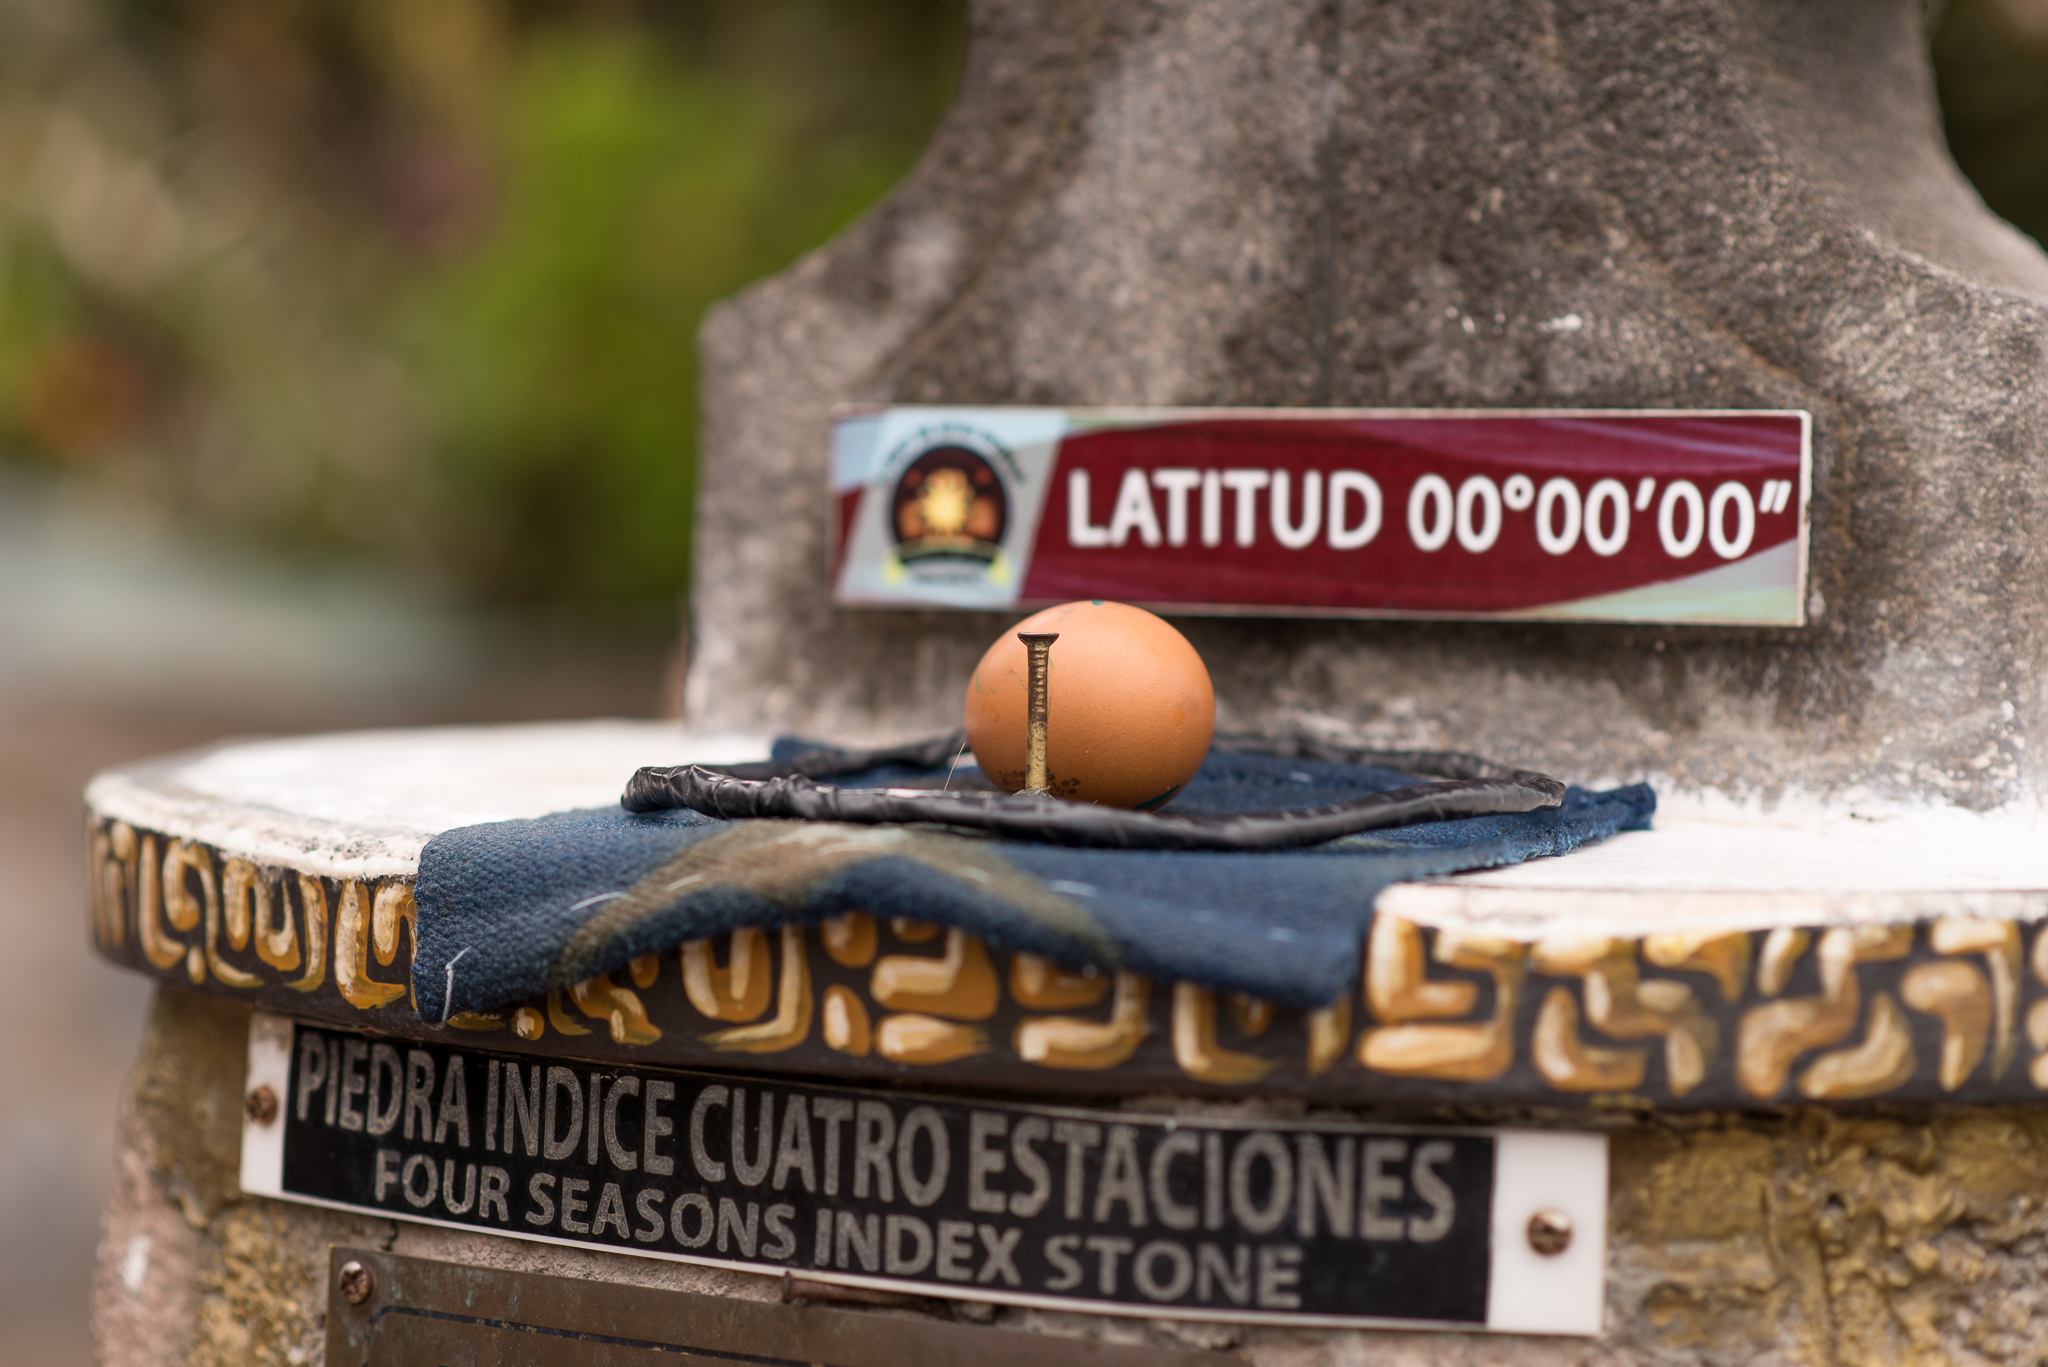 Pre-balancing of an egg on a nail on the equator...can't be done anywhere else